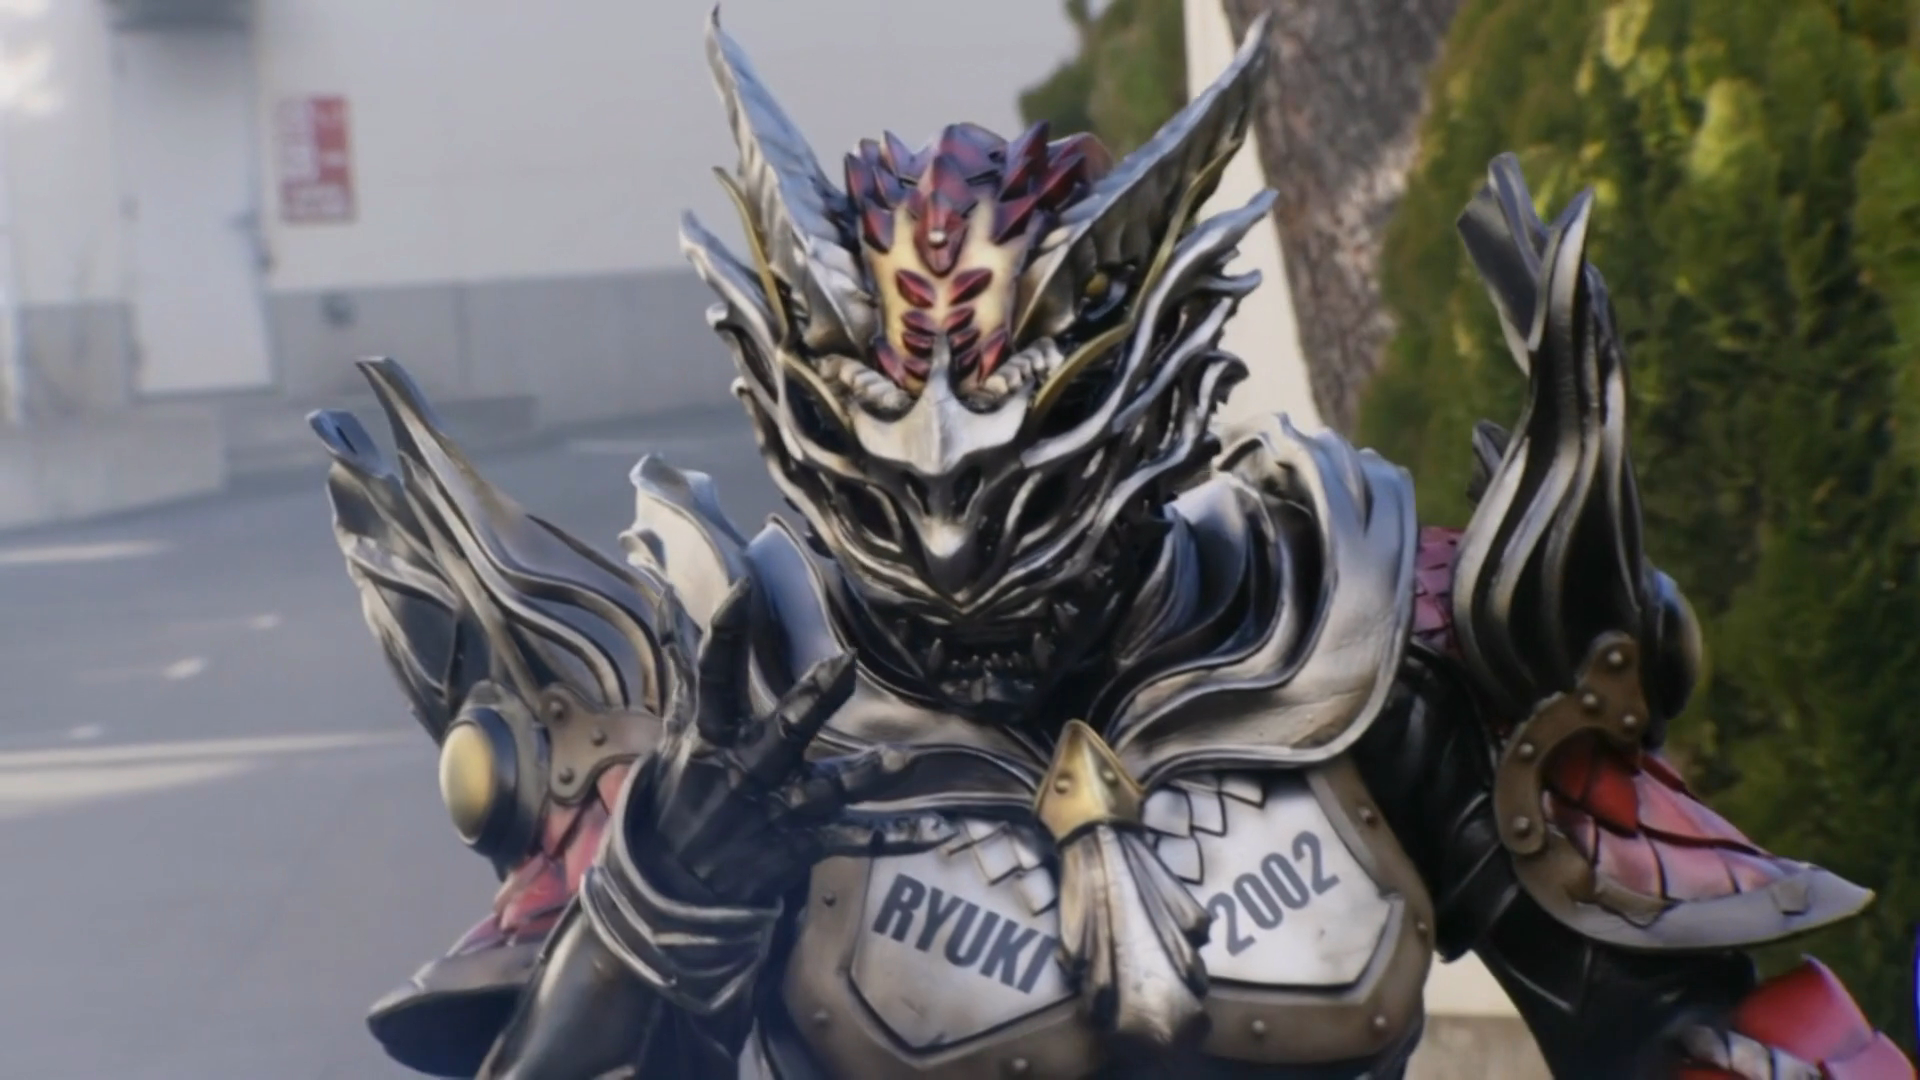 Another Ryuki